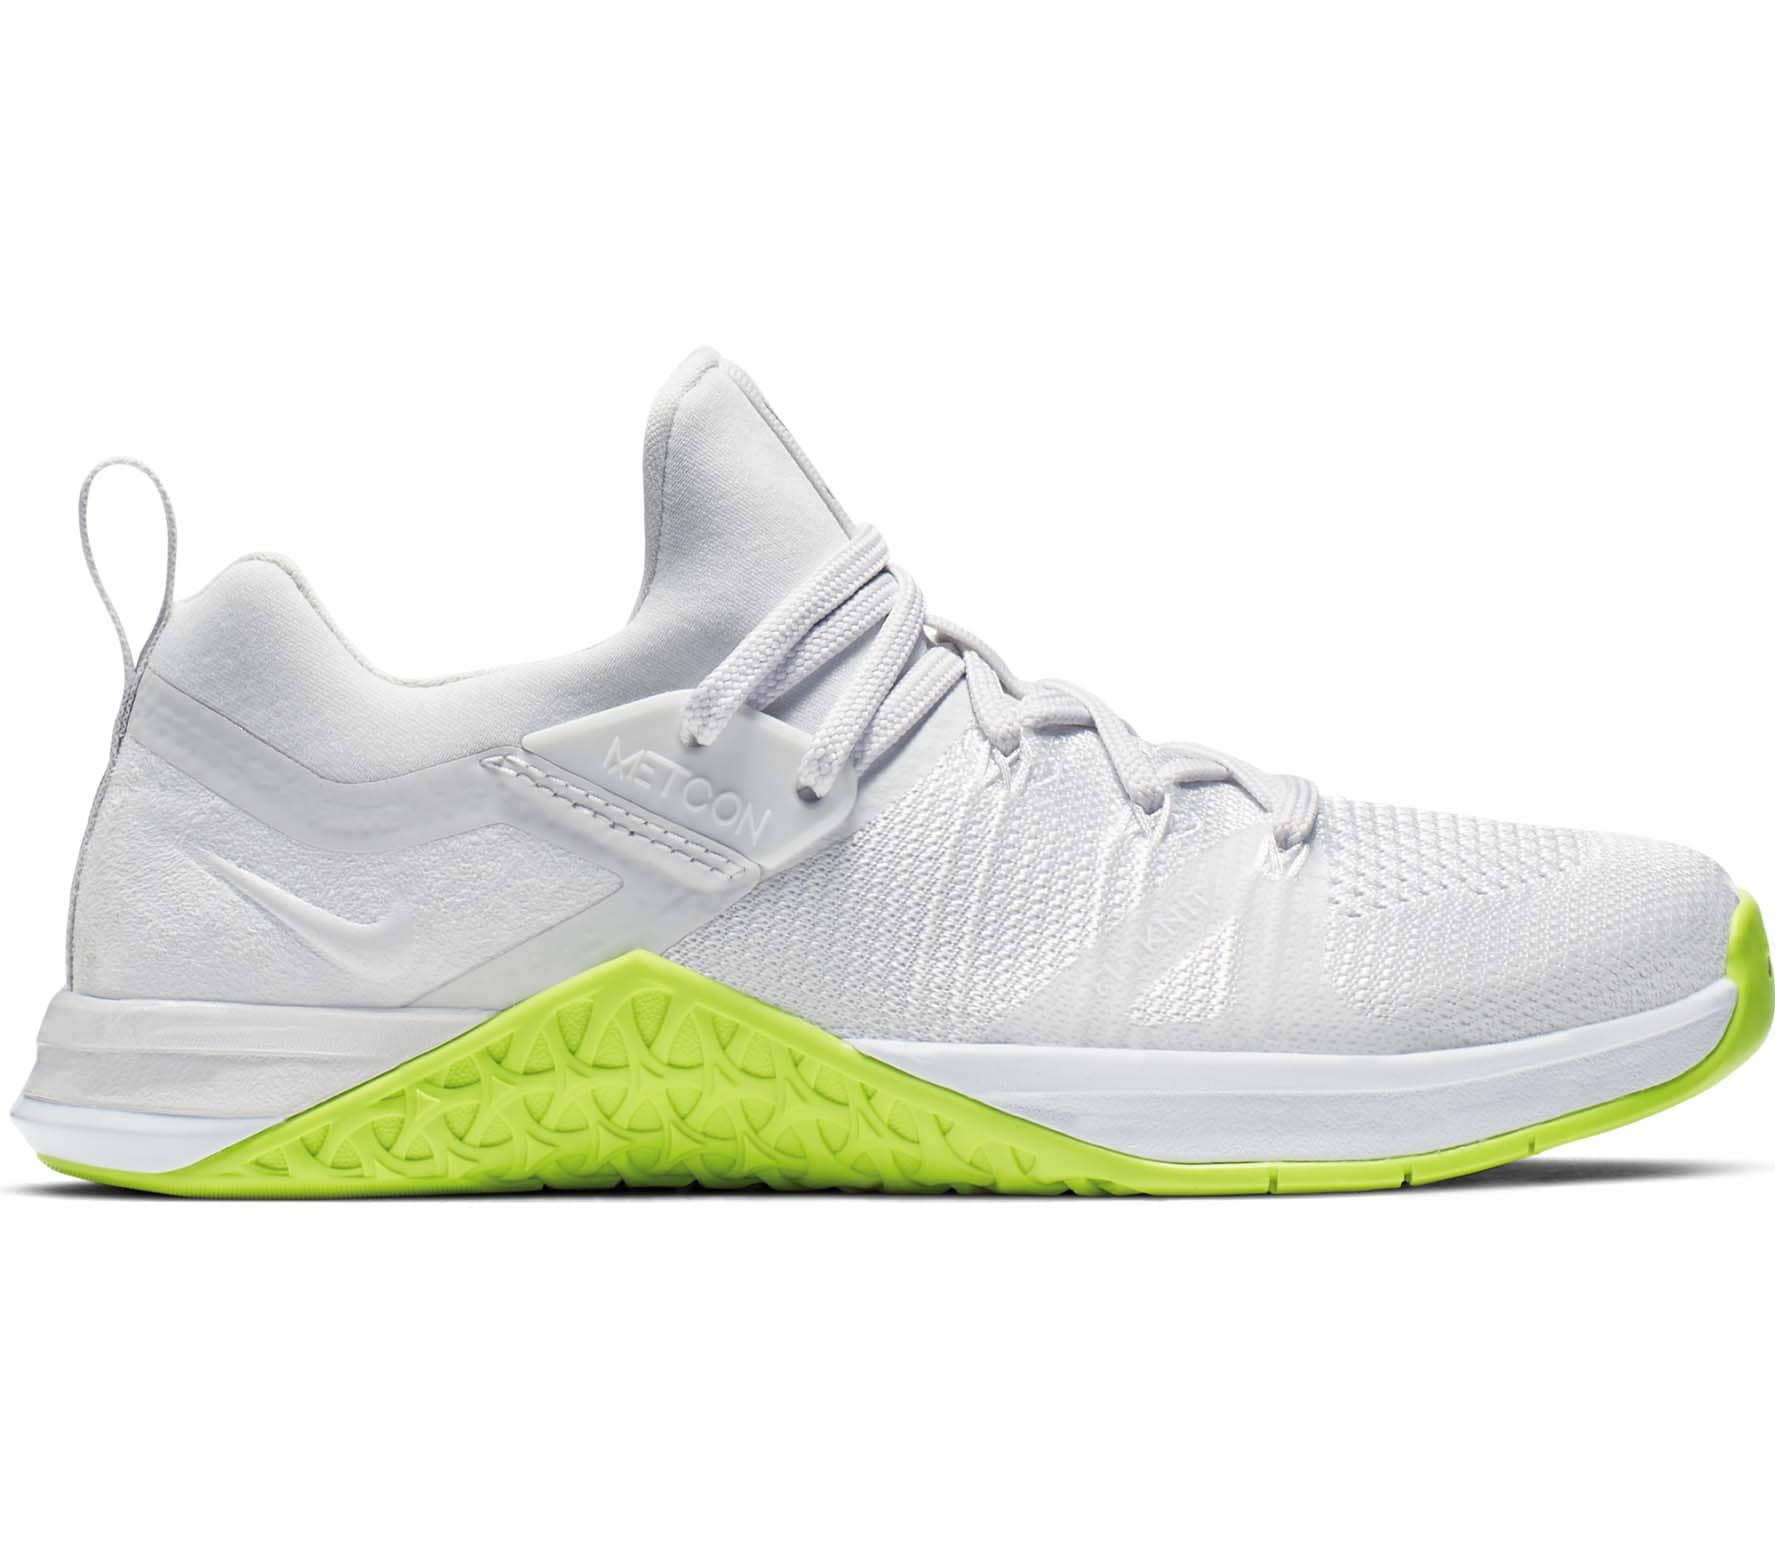 sale retailer a2d13 cef09 Nike - Metcon Flyknit 3 women s training shoes (white yellow)